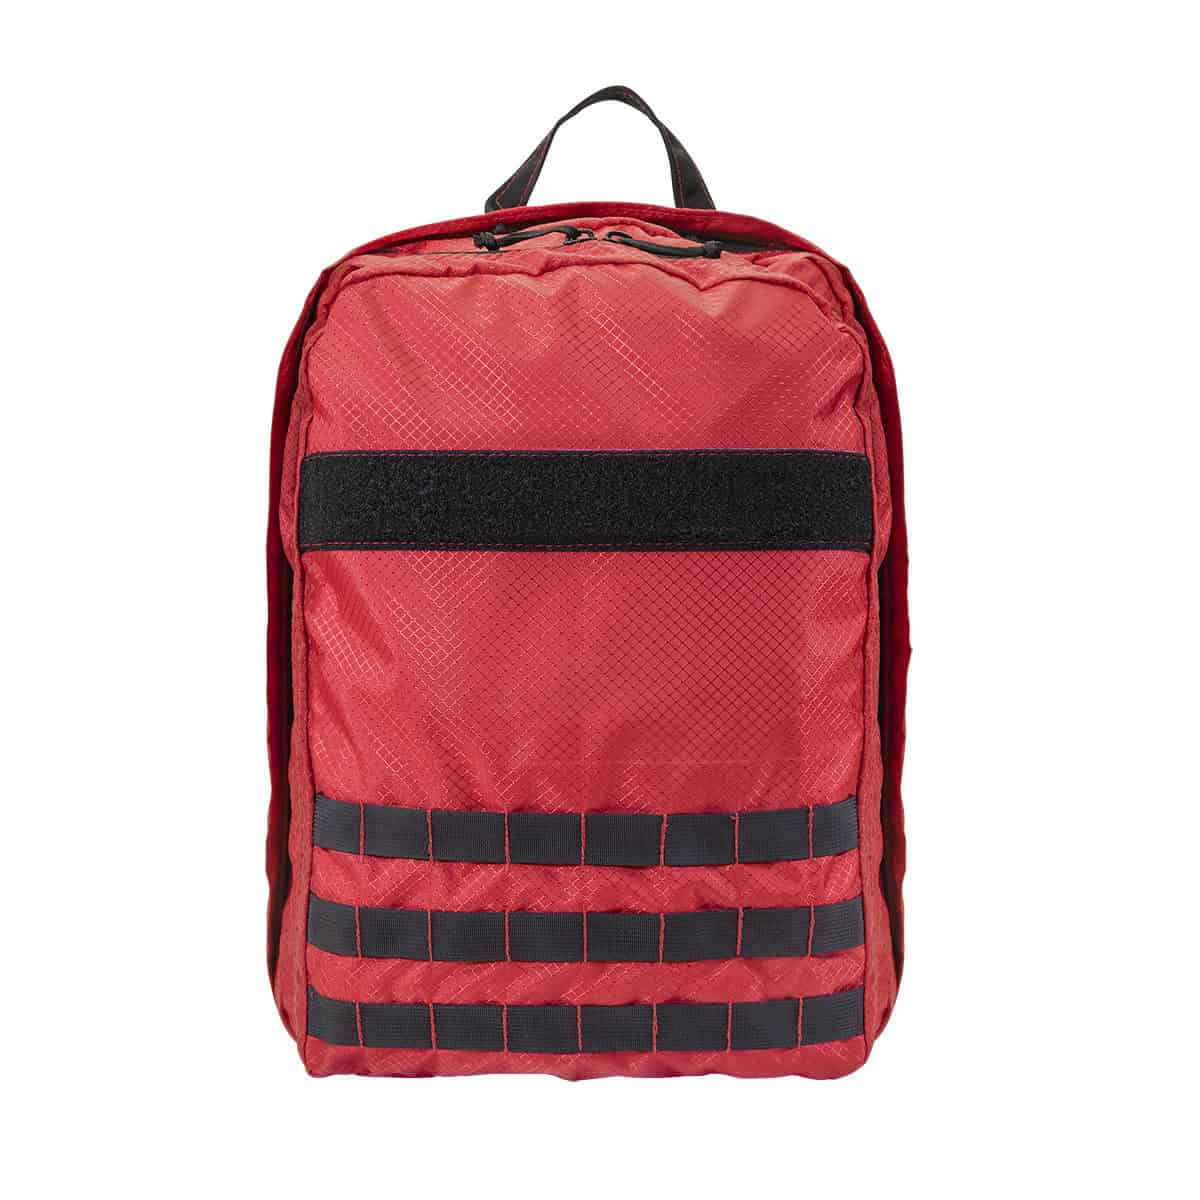 mojo rescue pack closed front red